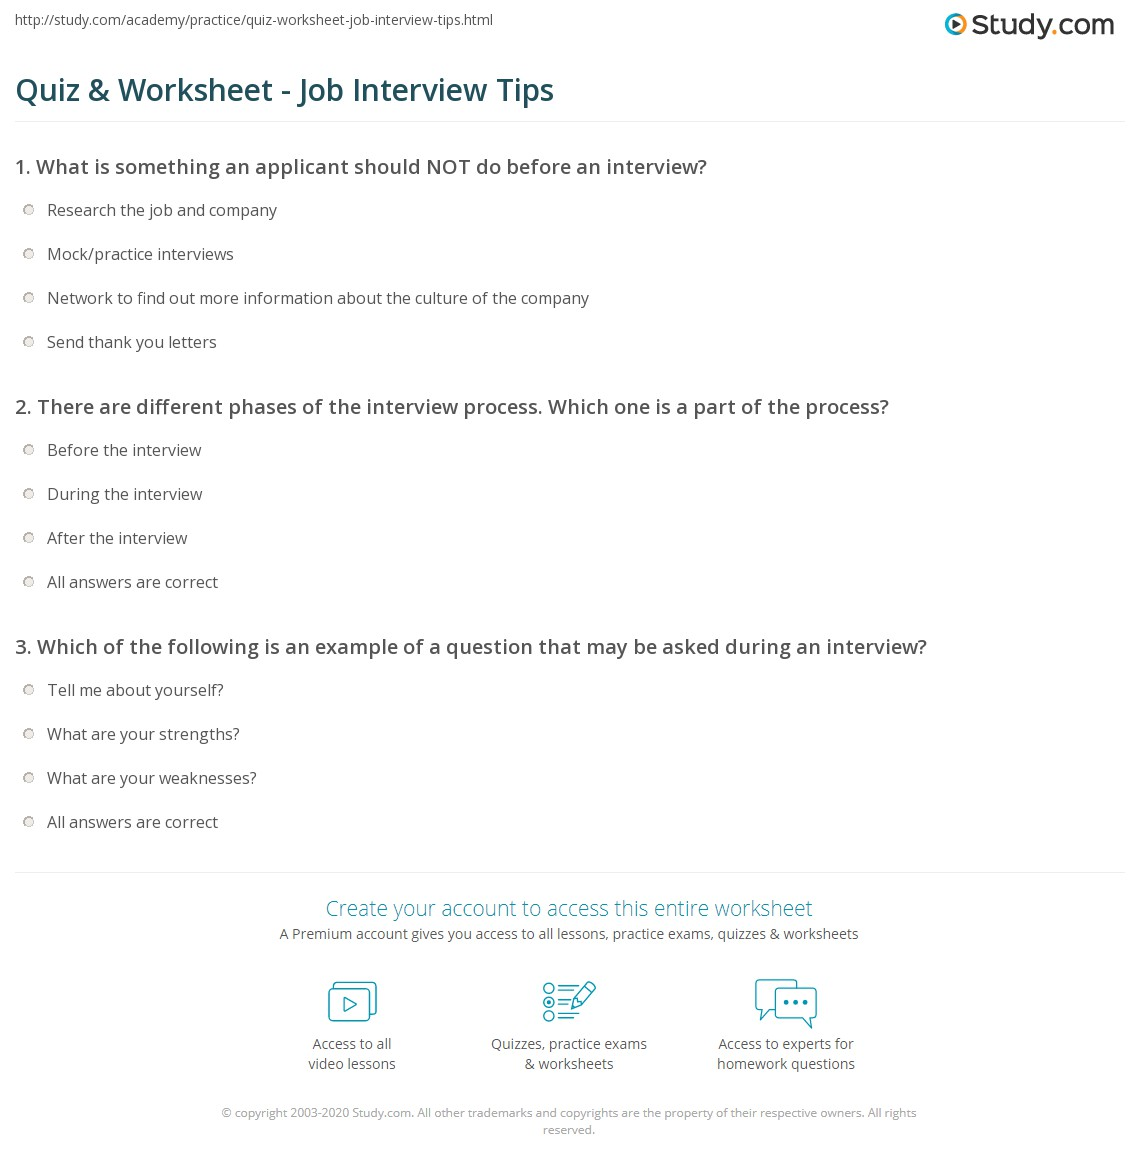 quiz worksheet job interview tips study com print job interview tips questions thank you letters worksheet